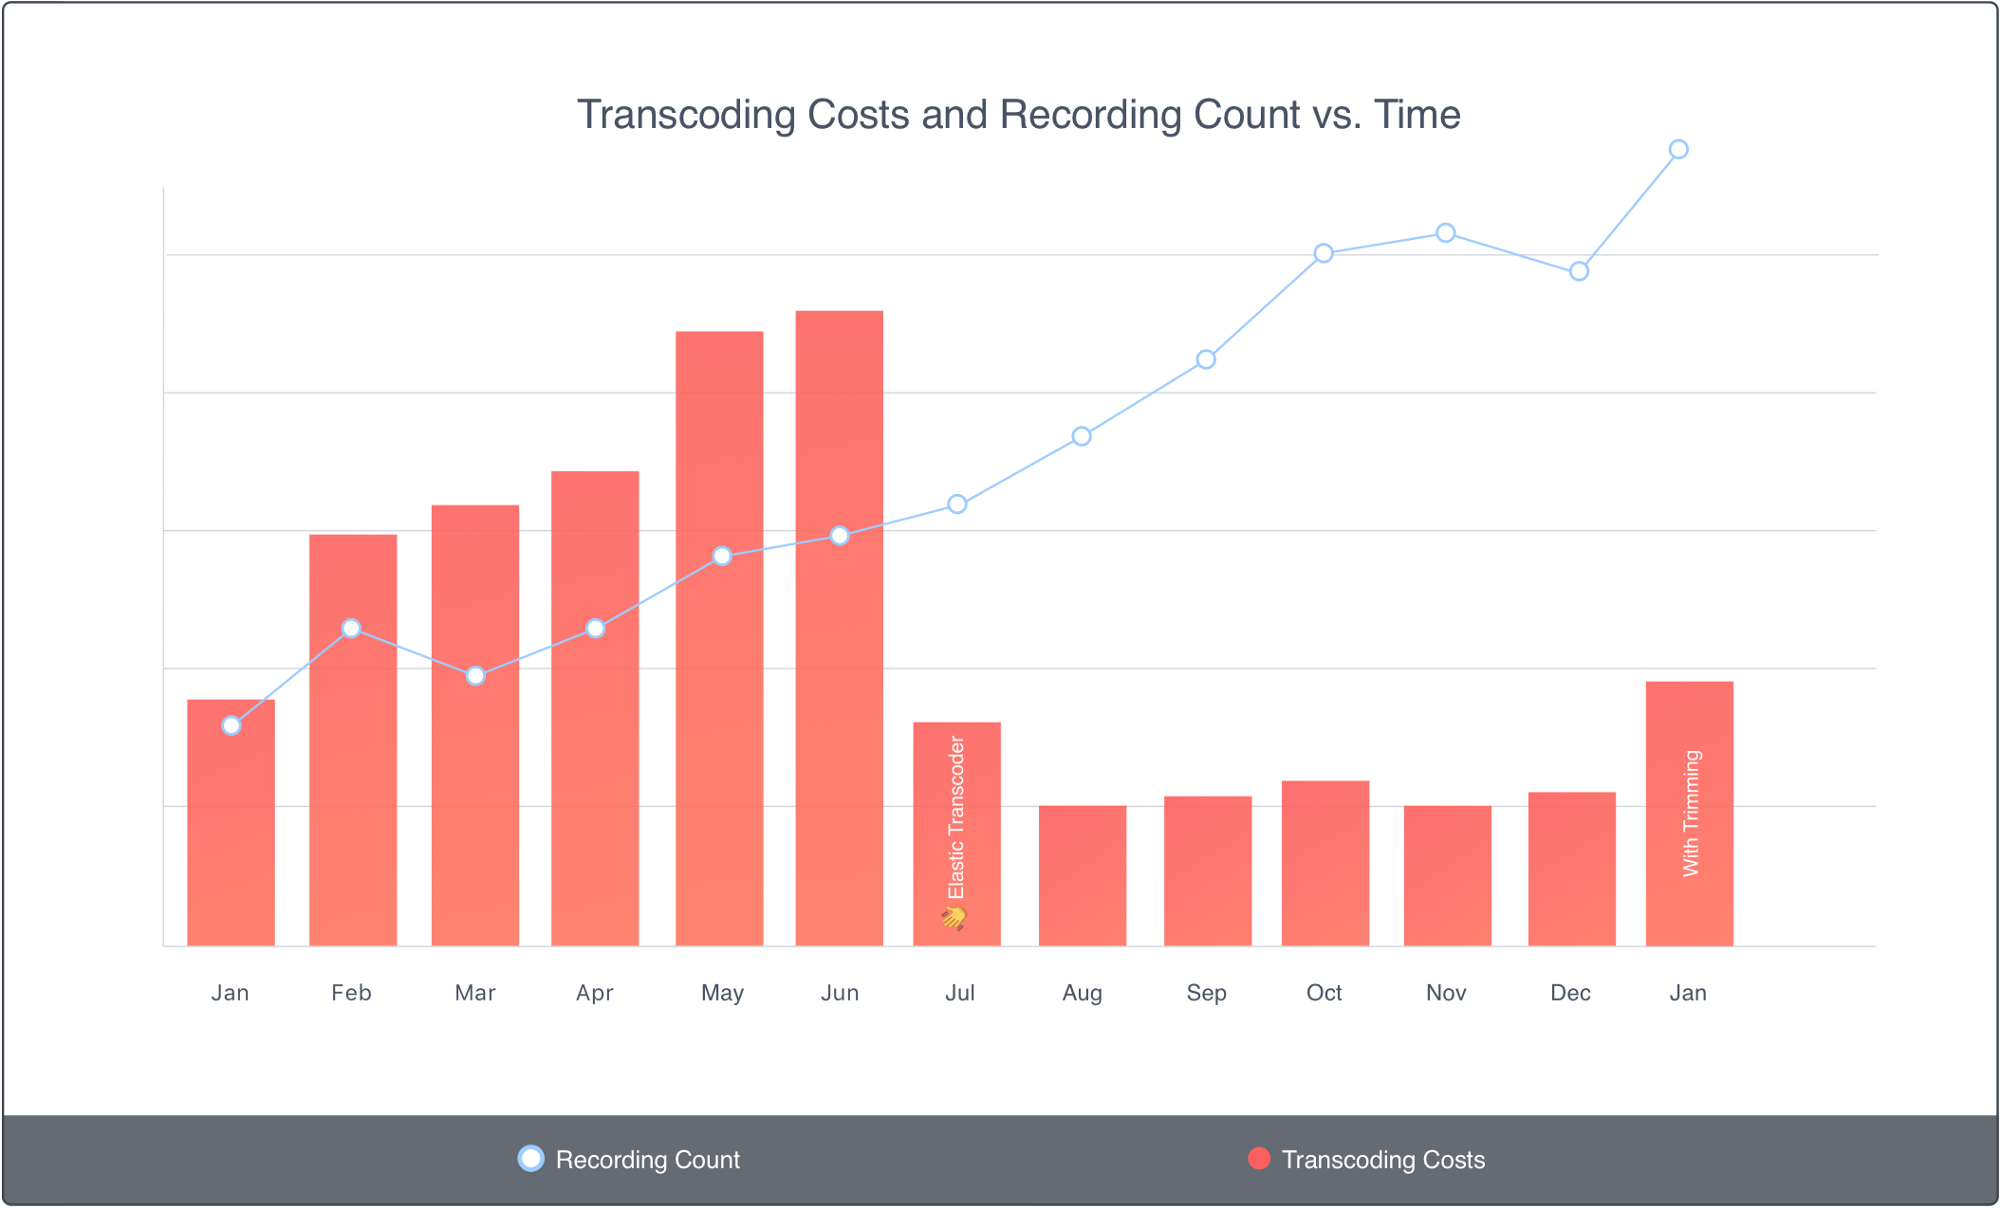 Transcoding costs and recording count over time graph